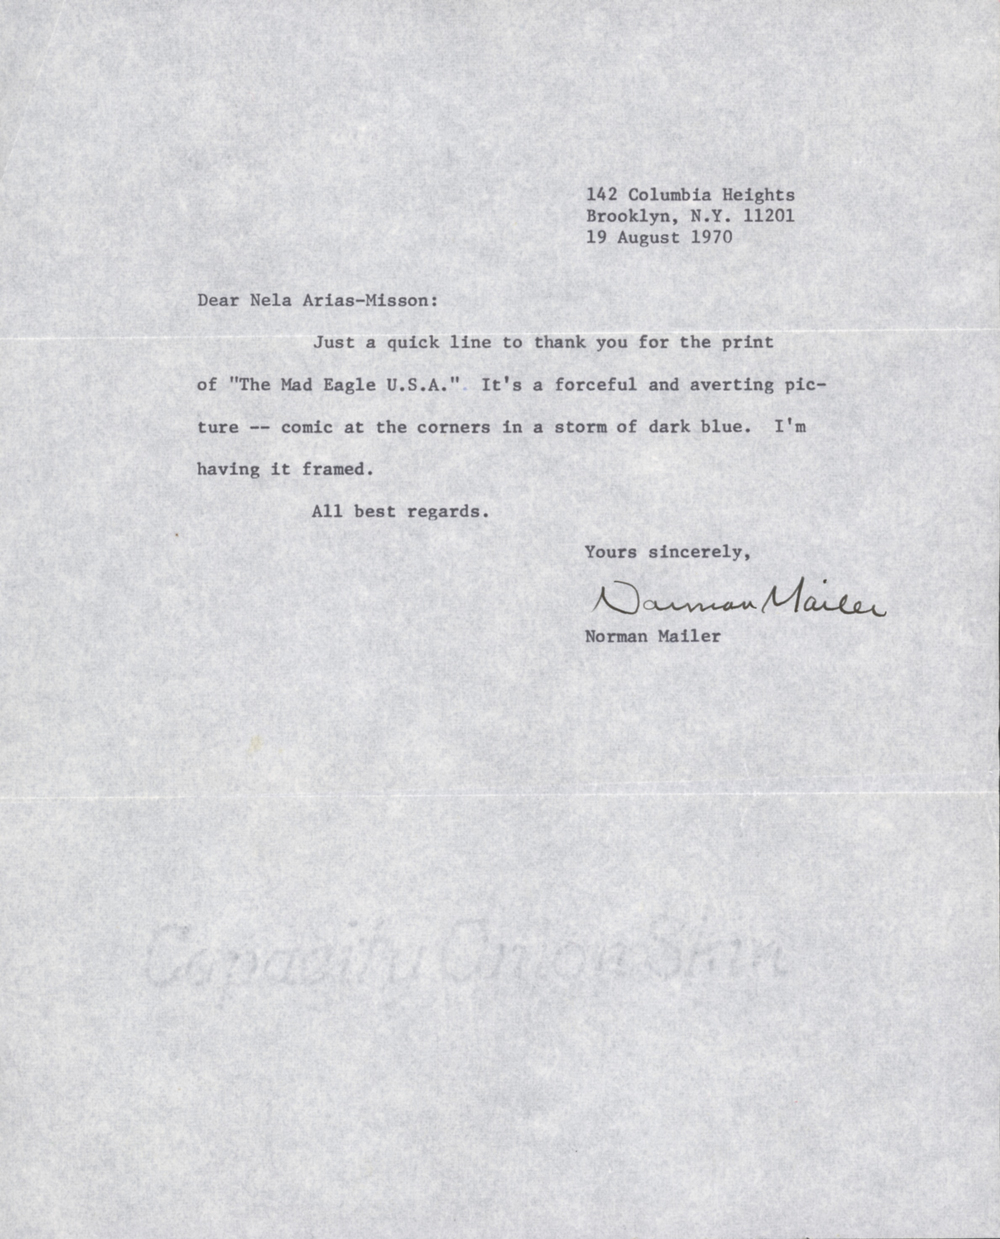 Letter from Norman Mailer to Nela Arias